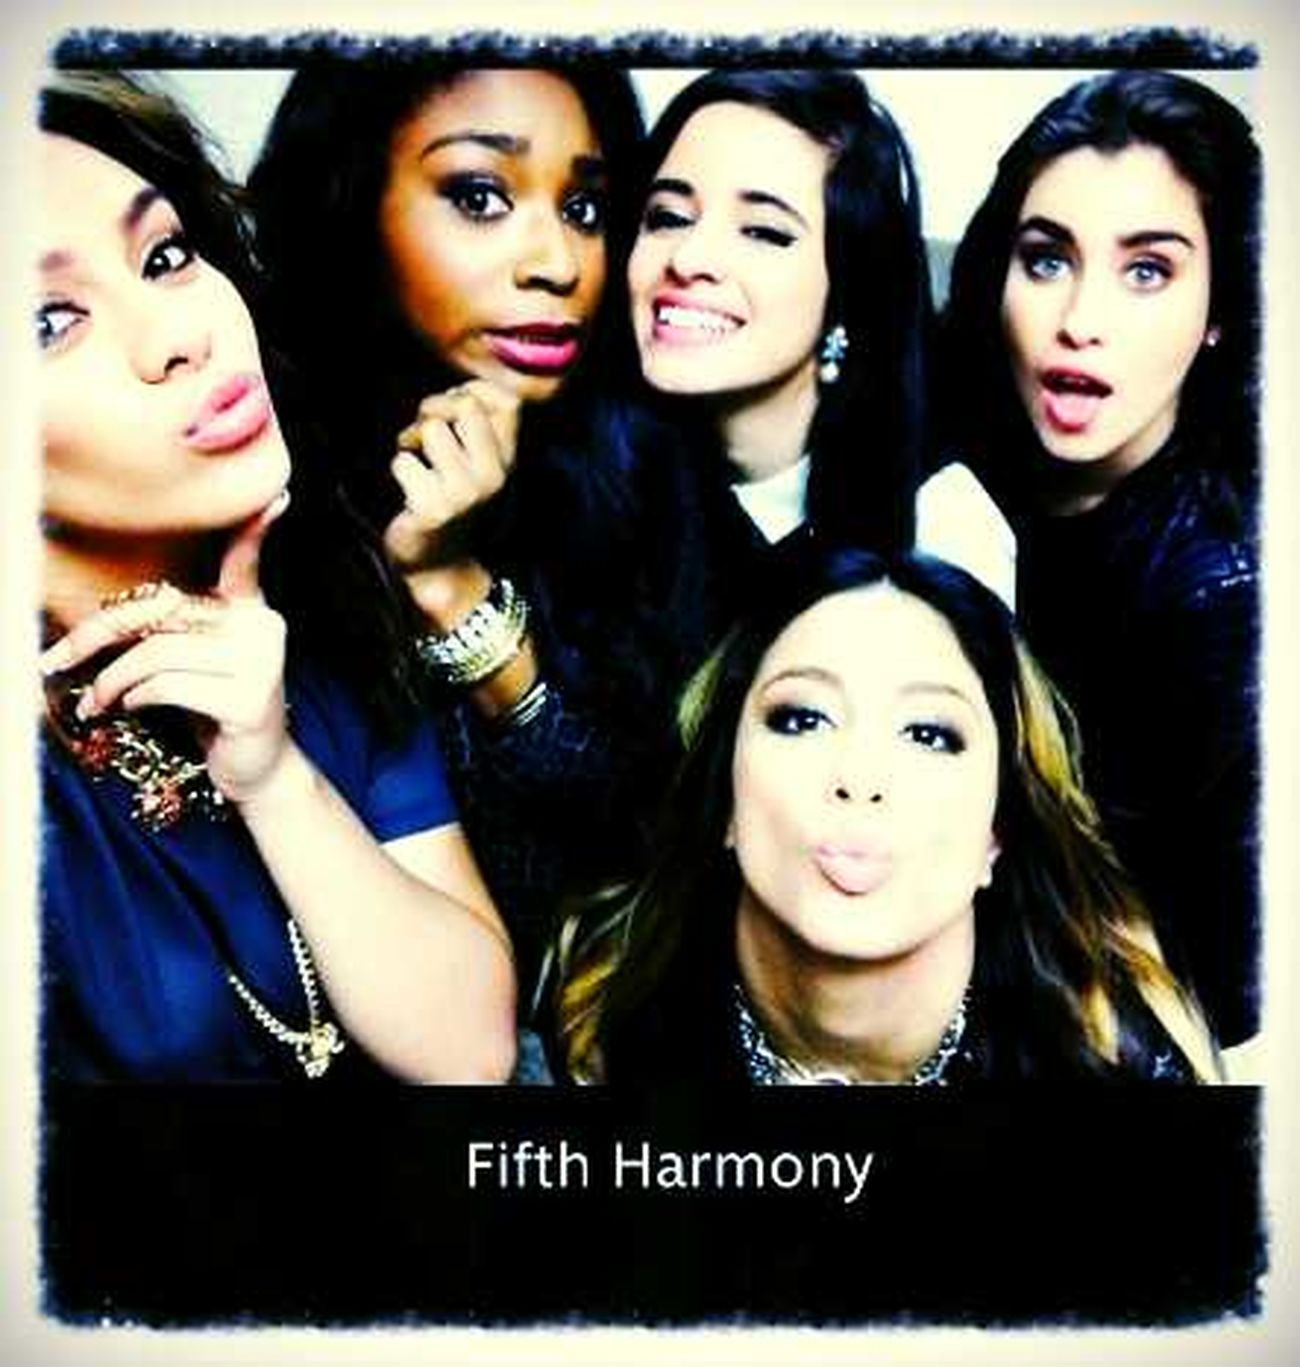 EyeEm Music Lover Greatness Fifth Harmony Love These Girls